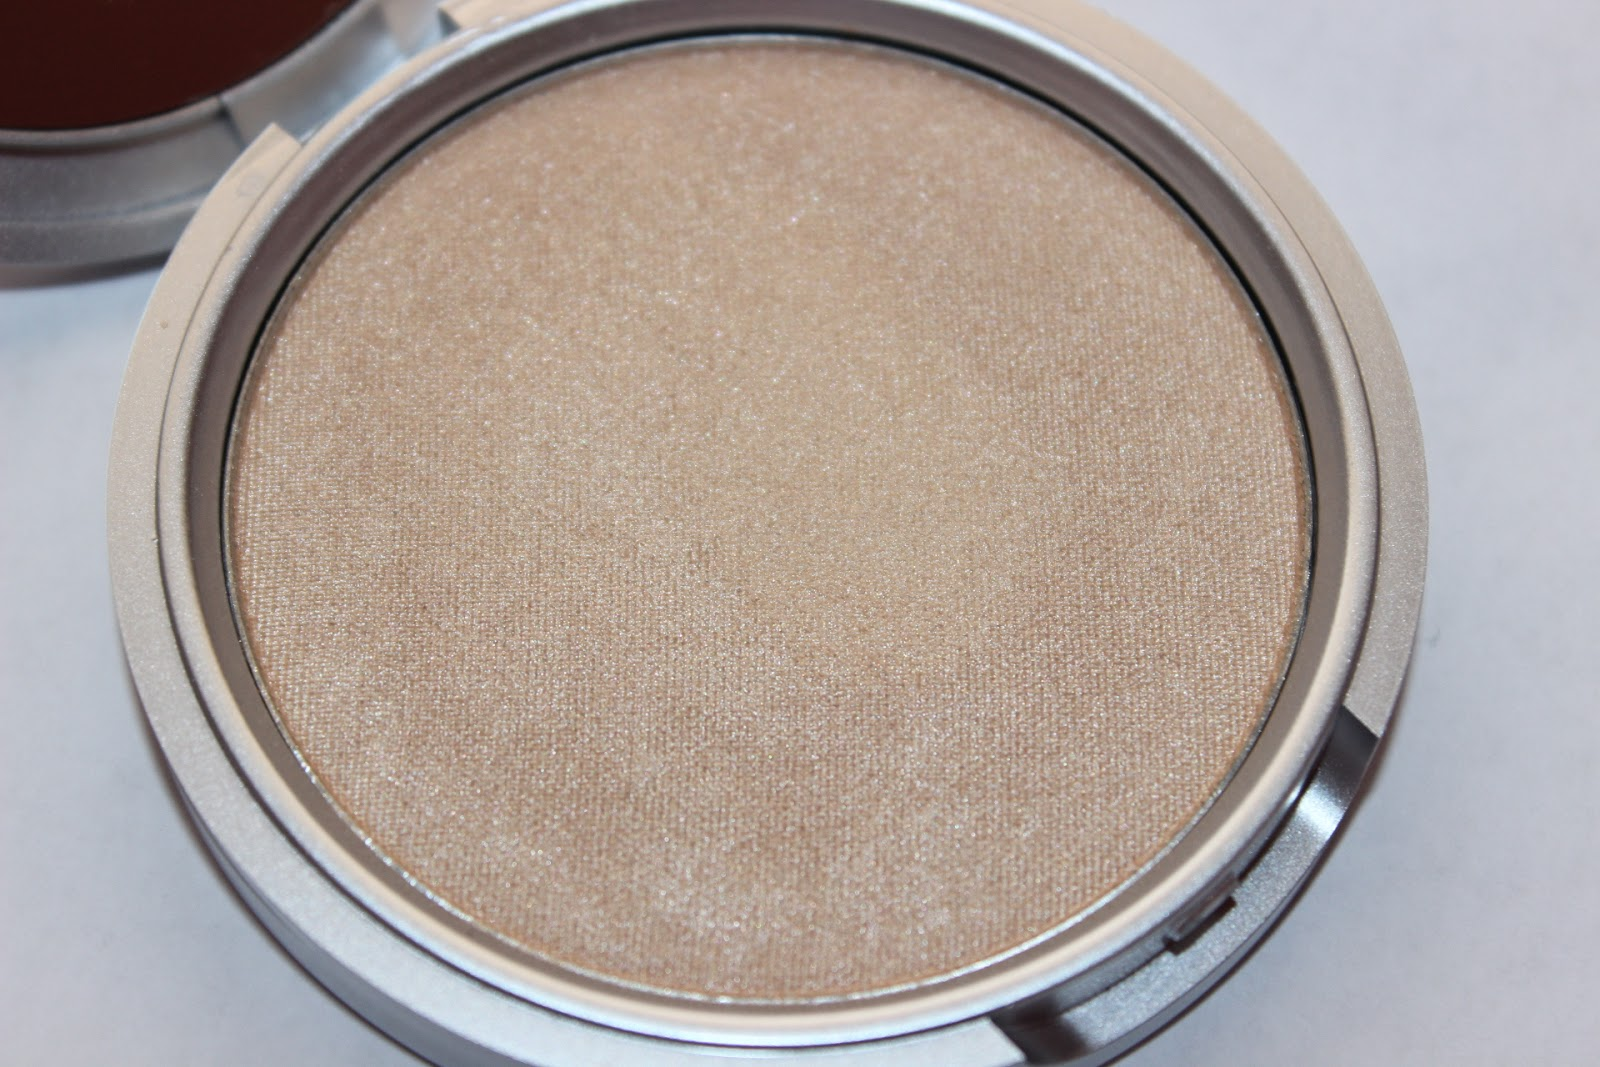 Review: The Balm Mary Lou Manizer Highlighter